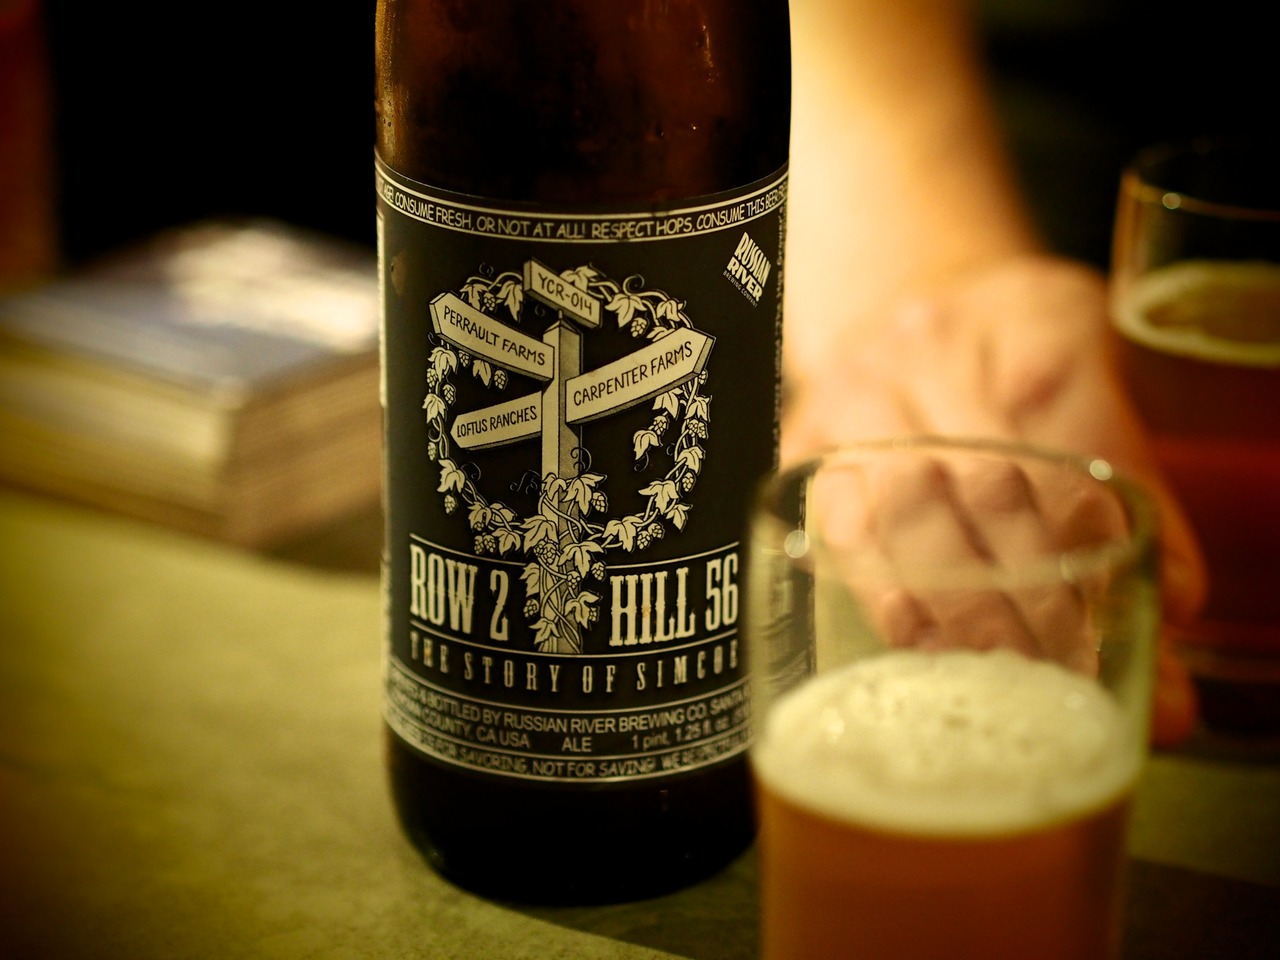 """""""Row 2 Hill 56"""" from Russian River Brewing Company.Thanks to Adam at  Grape & Grain  for popping this one for us at the bar."""